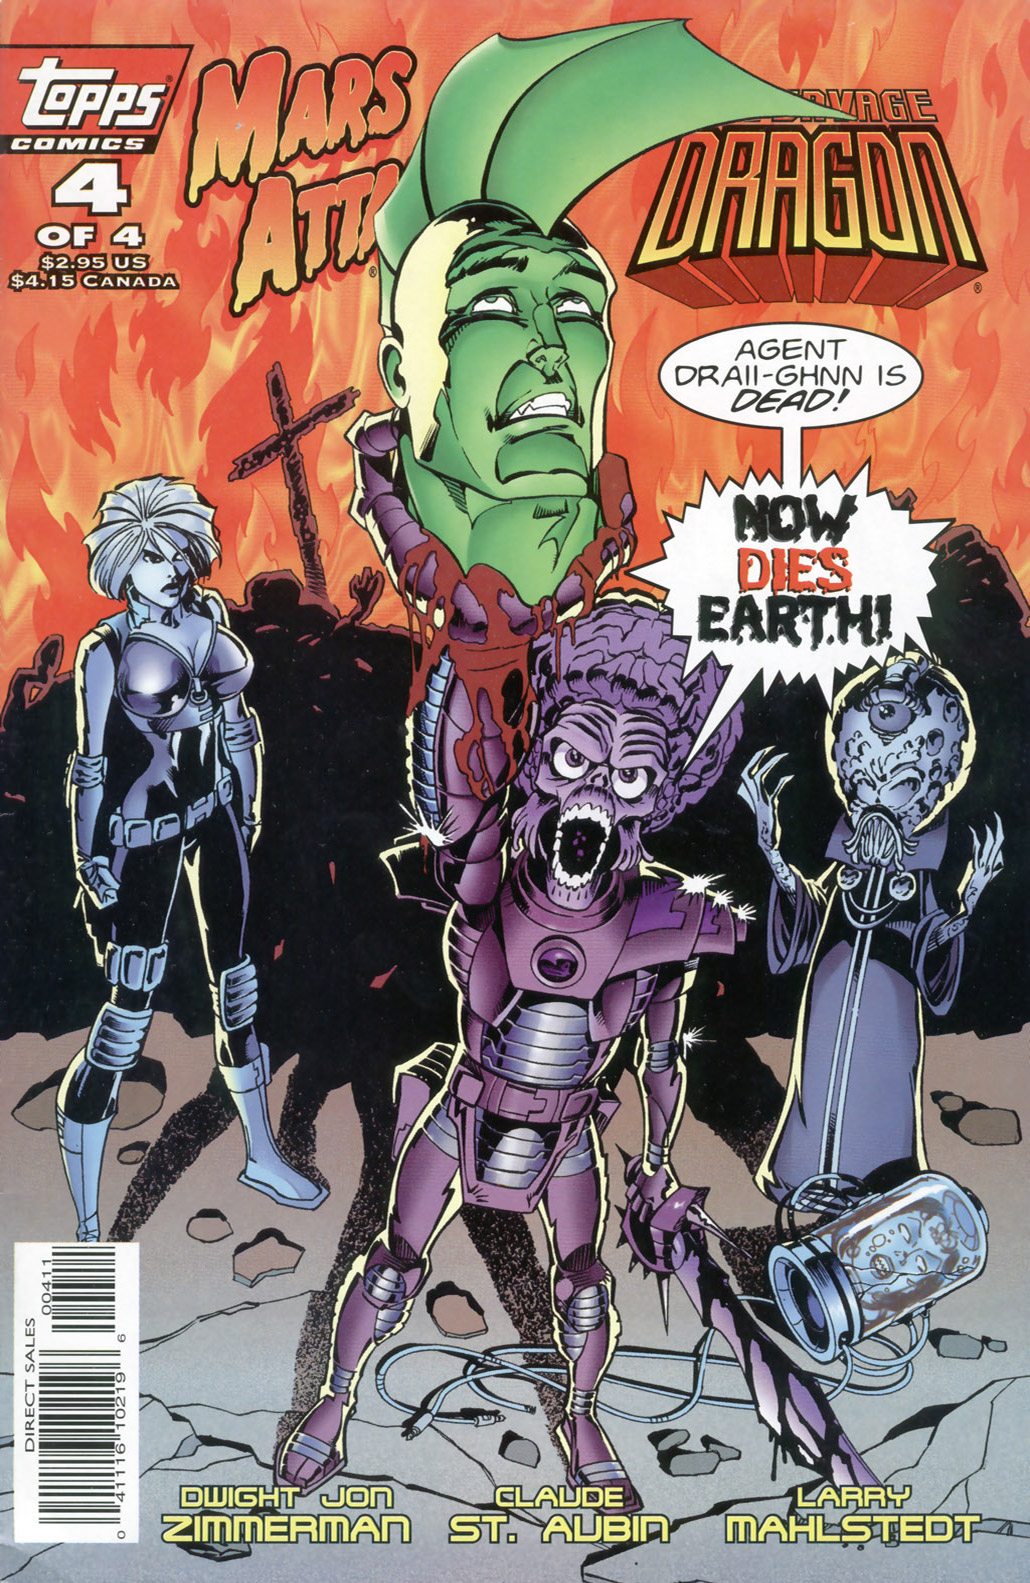 Cover Mars Attacks Savage Dragon #04